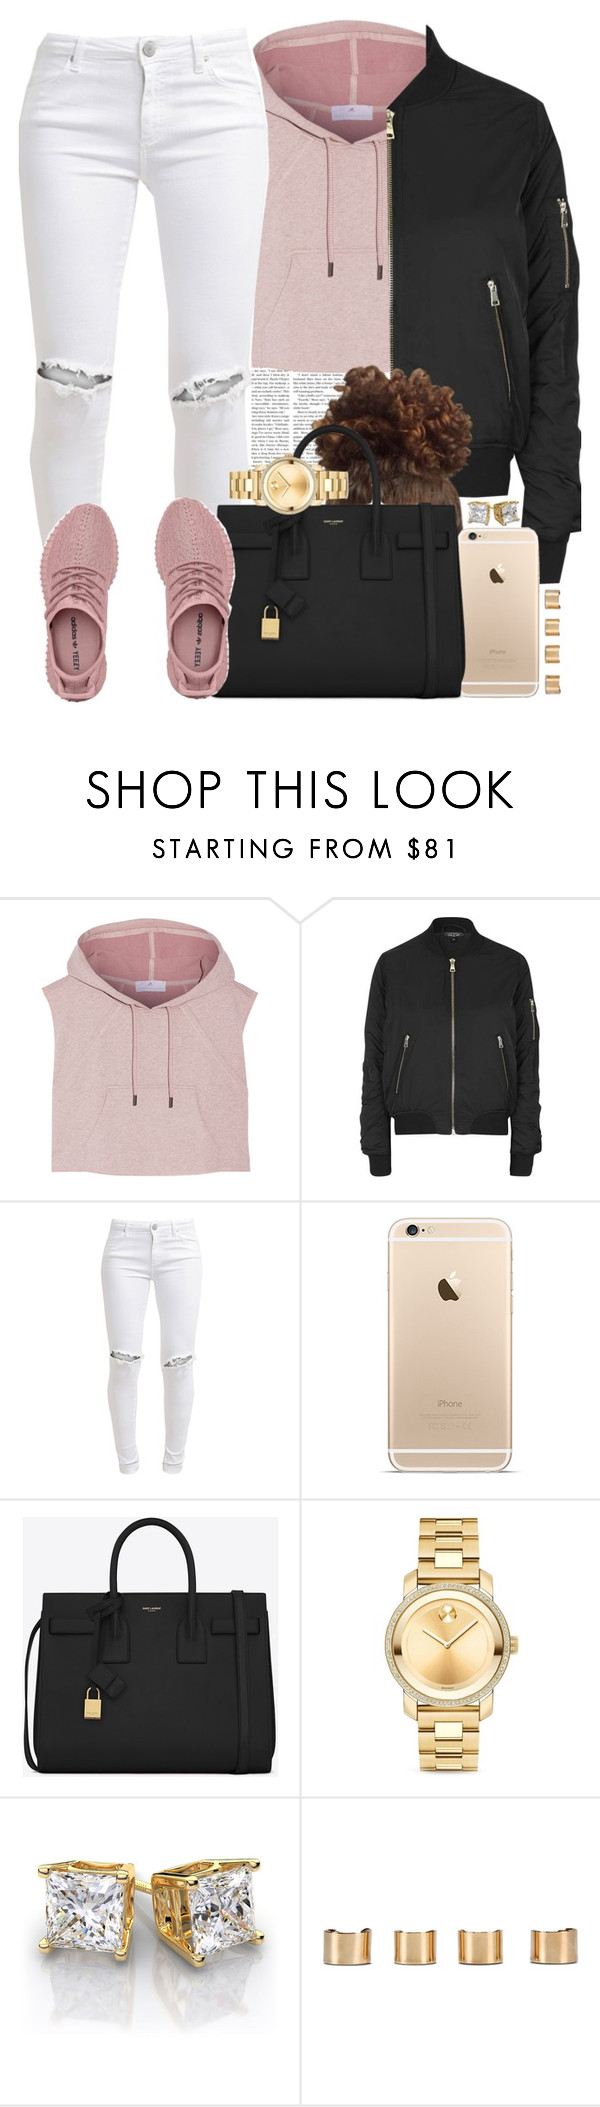 """""""Pink Yeezys (the best ones I've seen tbh)"""" by livelifefreelyy ❤ liked on Polyvore featuring adidas, Topshop, FiveUnits, Yves Saint Laurent, Movado and Maison Margiela"""